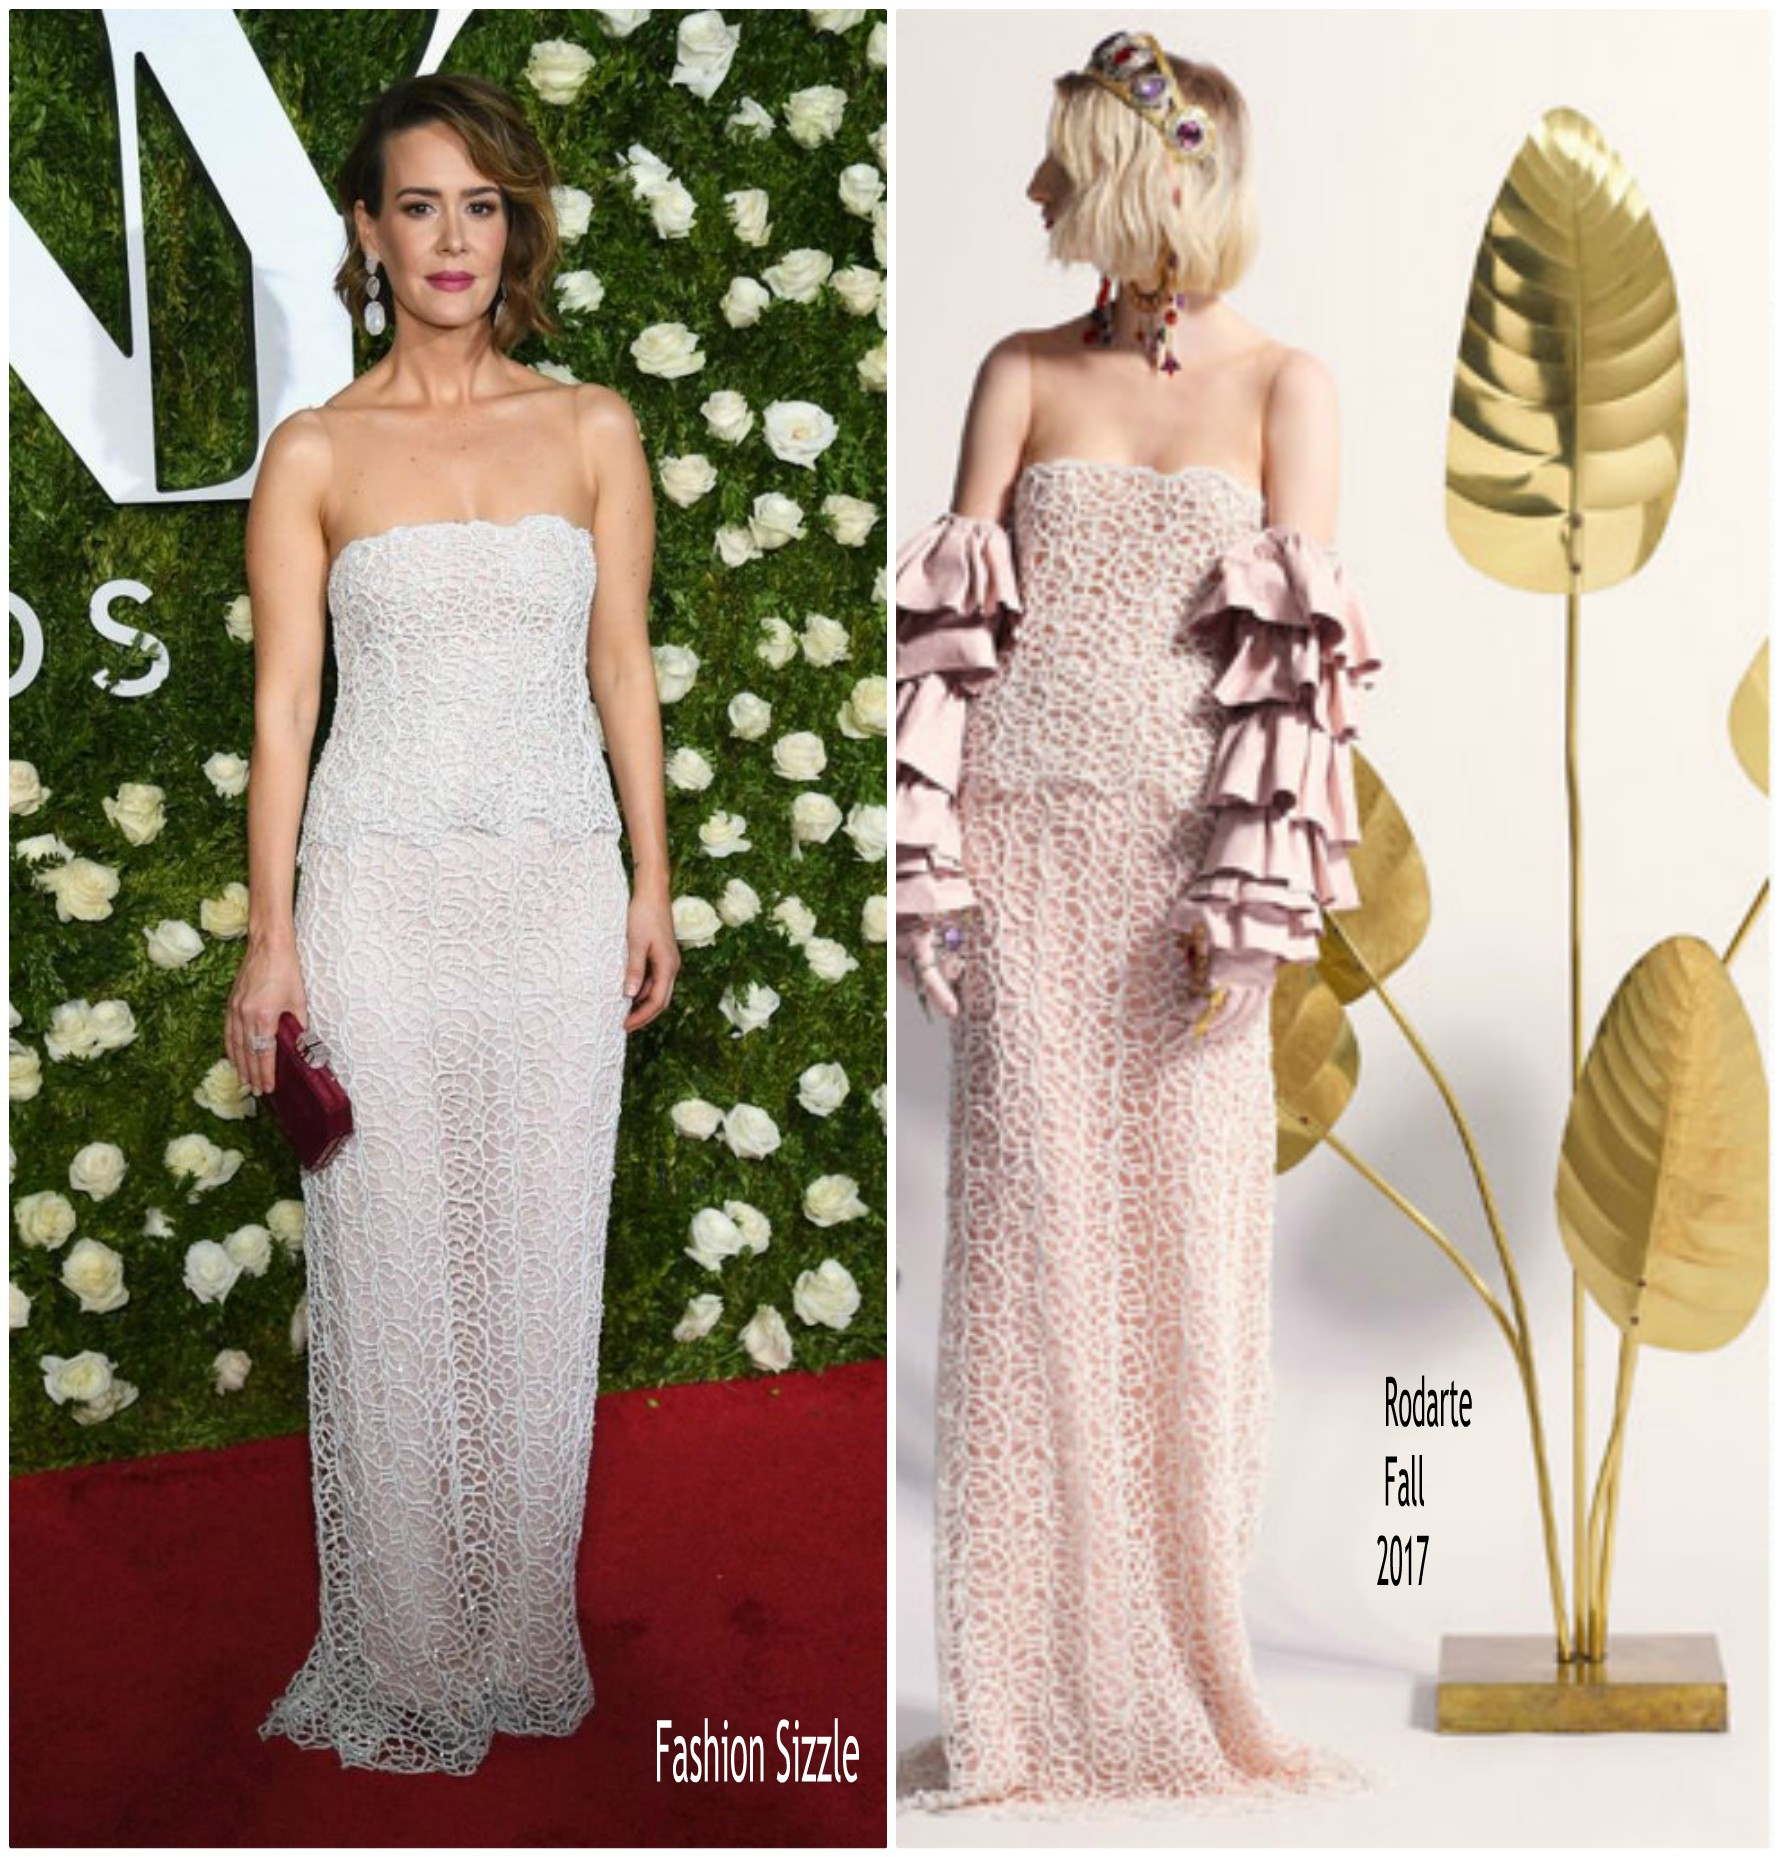 Sarah Paulson In Rodarte At 2017 Tony Awards - FASHION SIZZLE